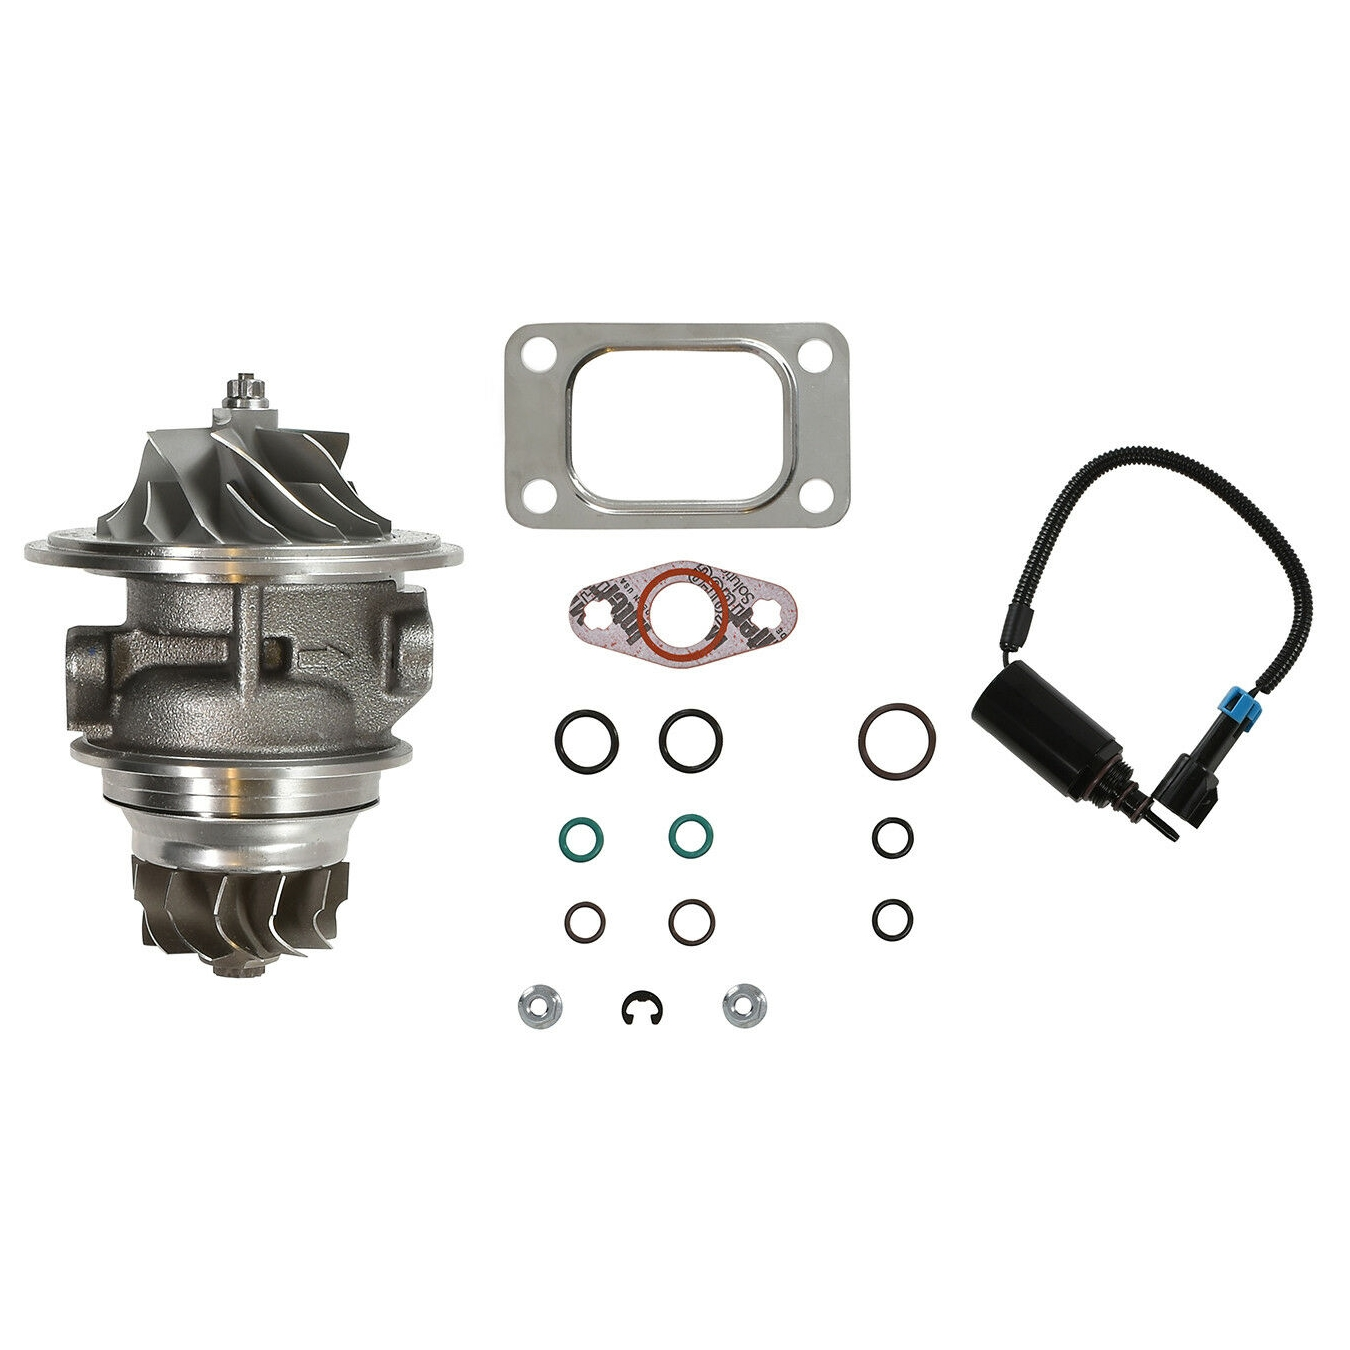 HE351CW Turbo Rebuild Kit Cast CHRA Wastegate Solenoid For 04.5-07 5.9L ISB Dodge Ram Cummins Diesel